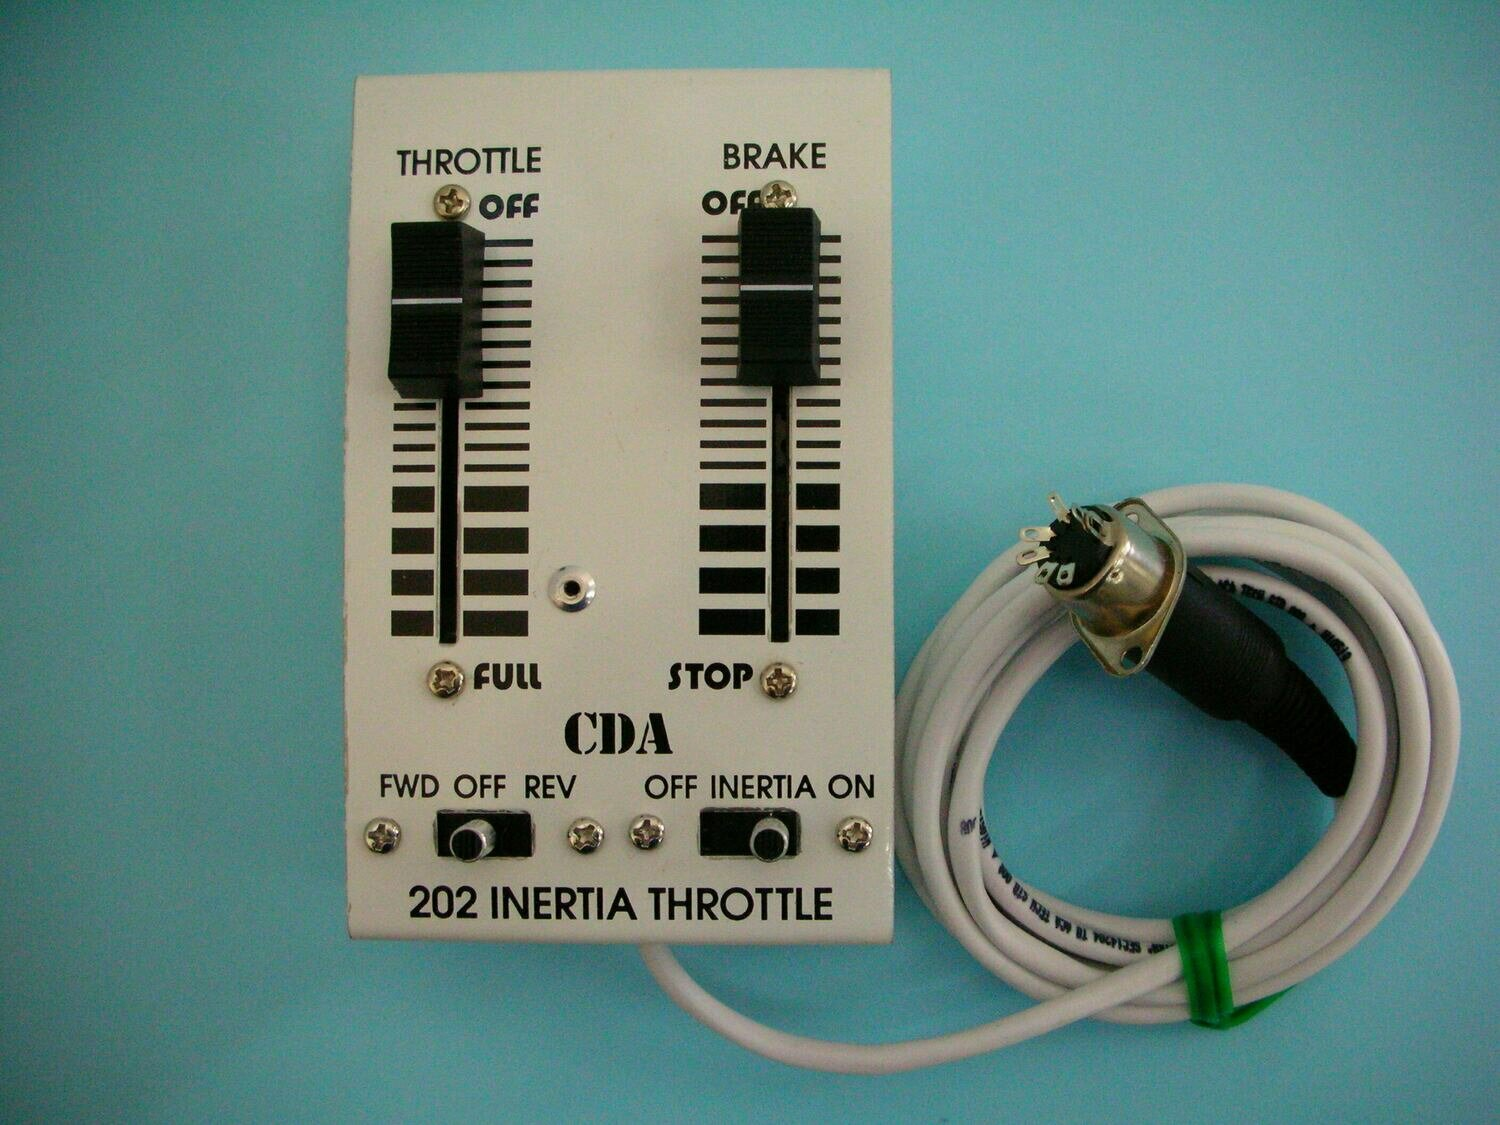 #202 Inertia Hand Held Throttle